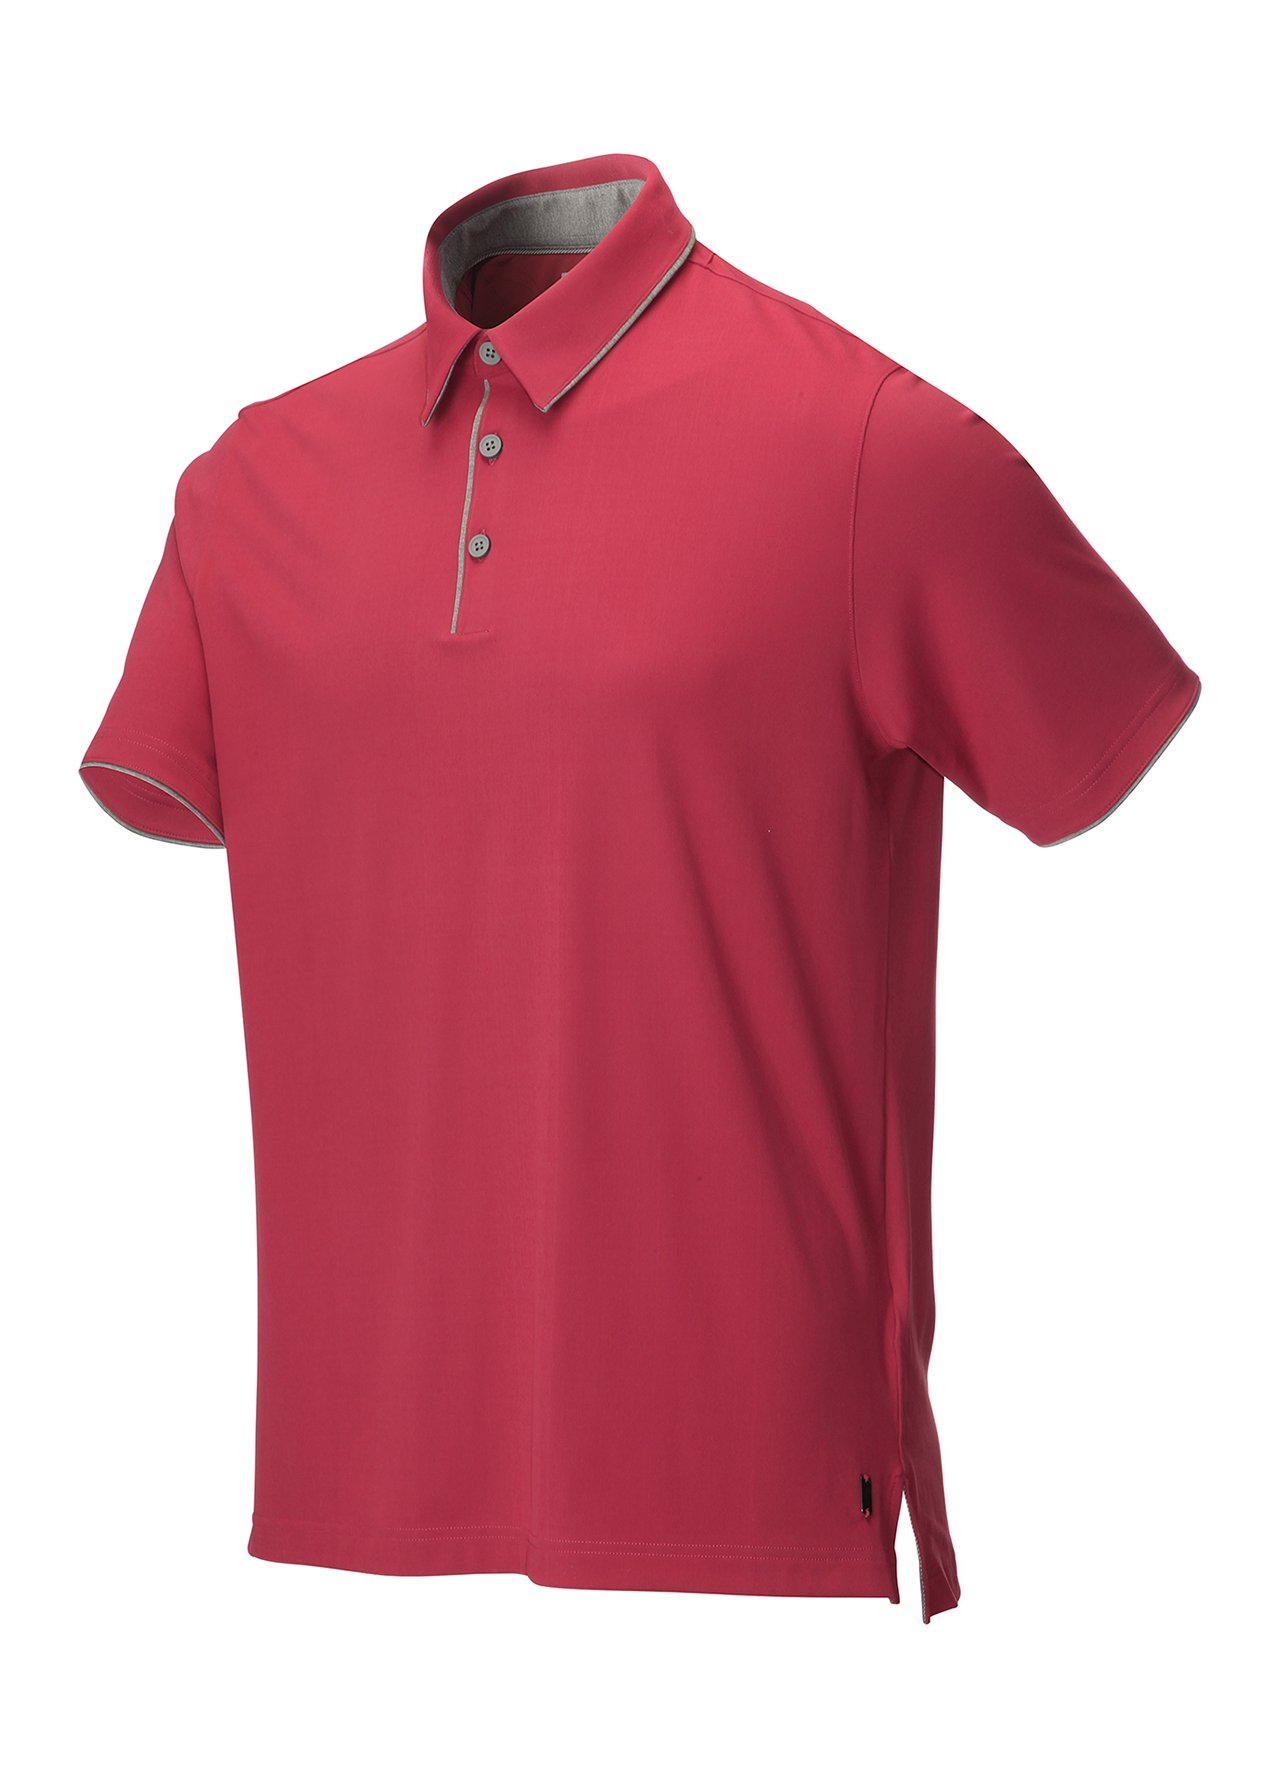 ashworth mens golf polo shirt sports top 48 off rrp ebay